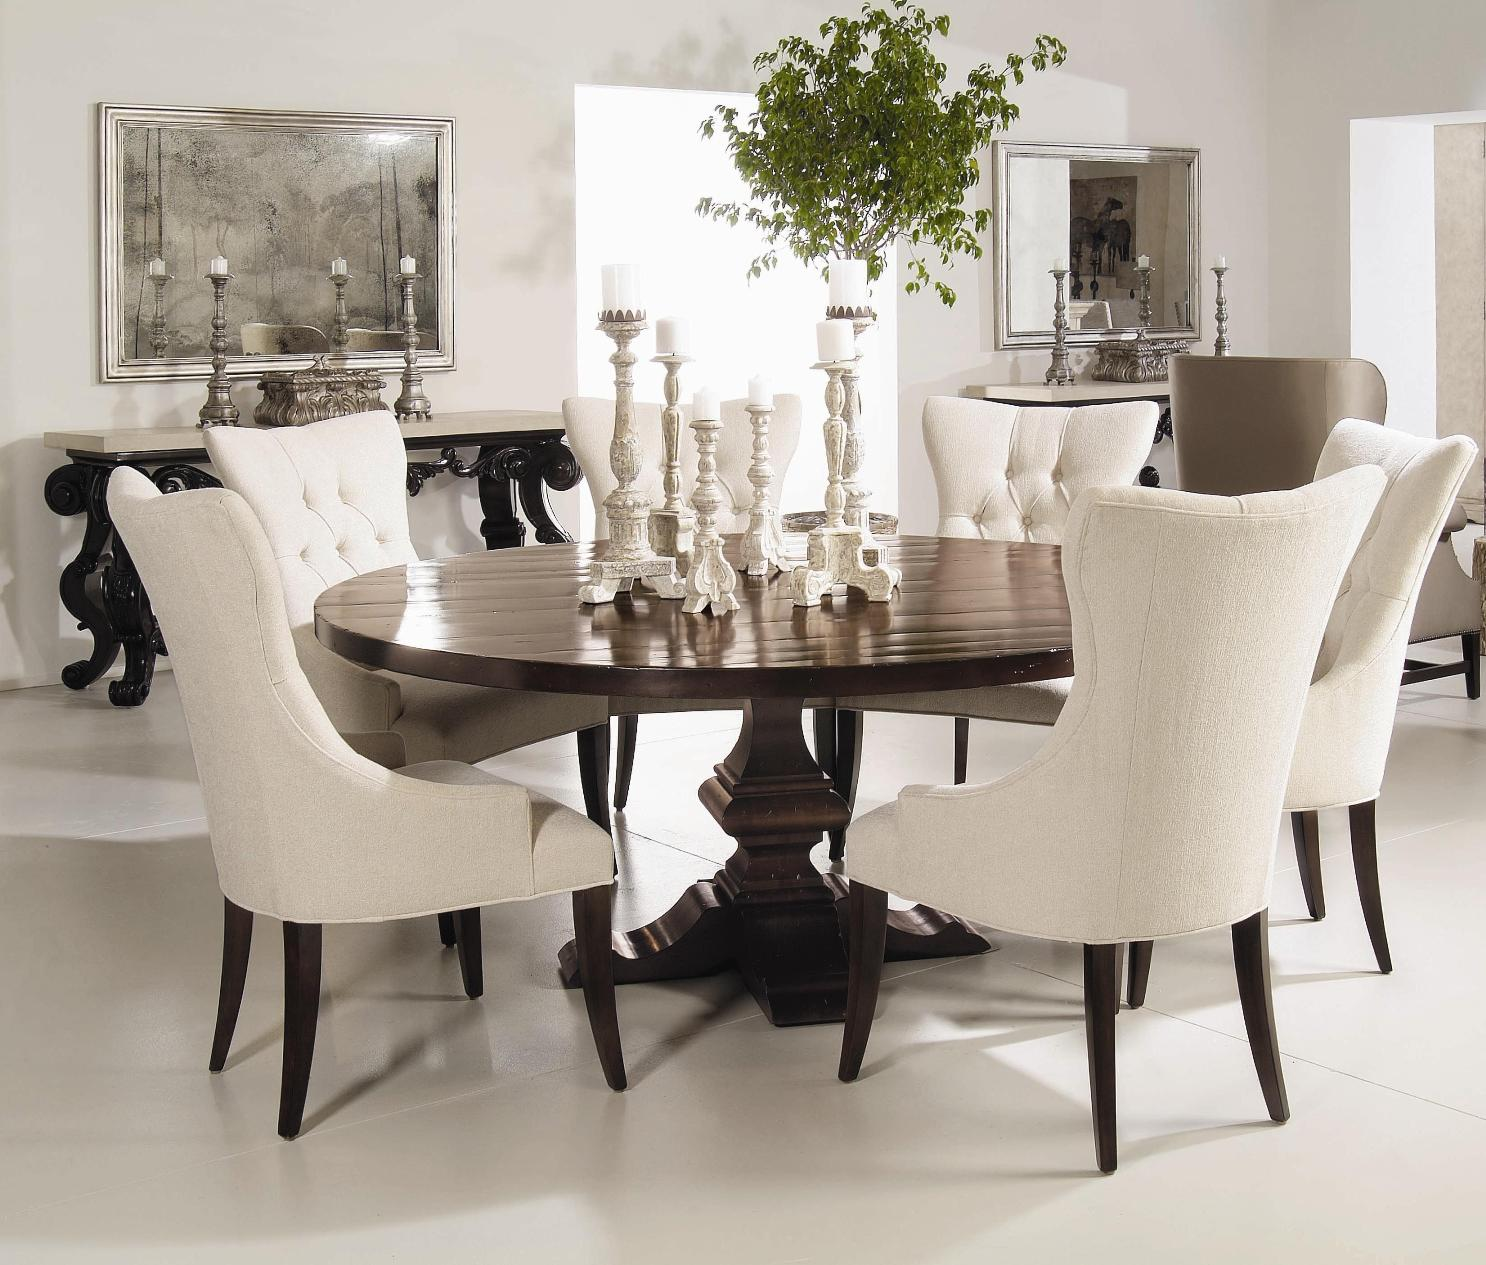 Invest In Pedestal Dining Room Table For A Magnificent Beauty And Functionality 4 Invest In